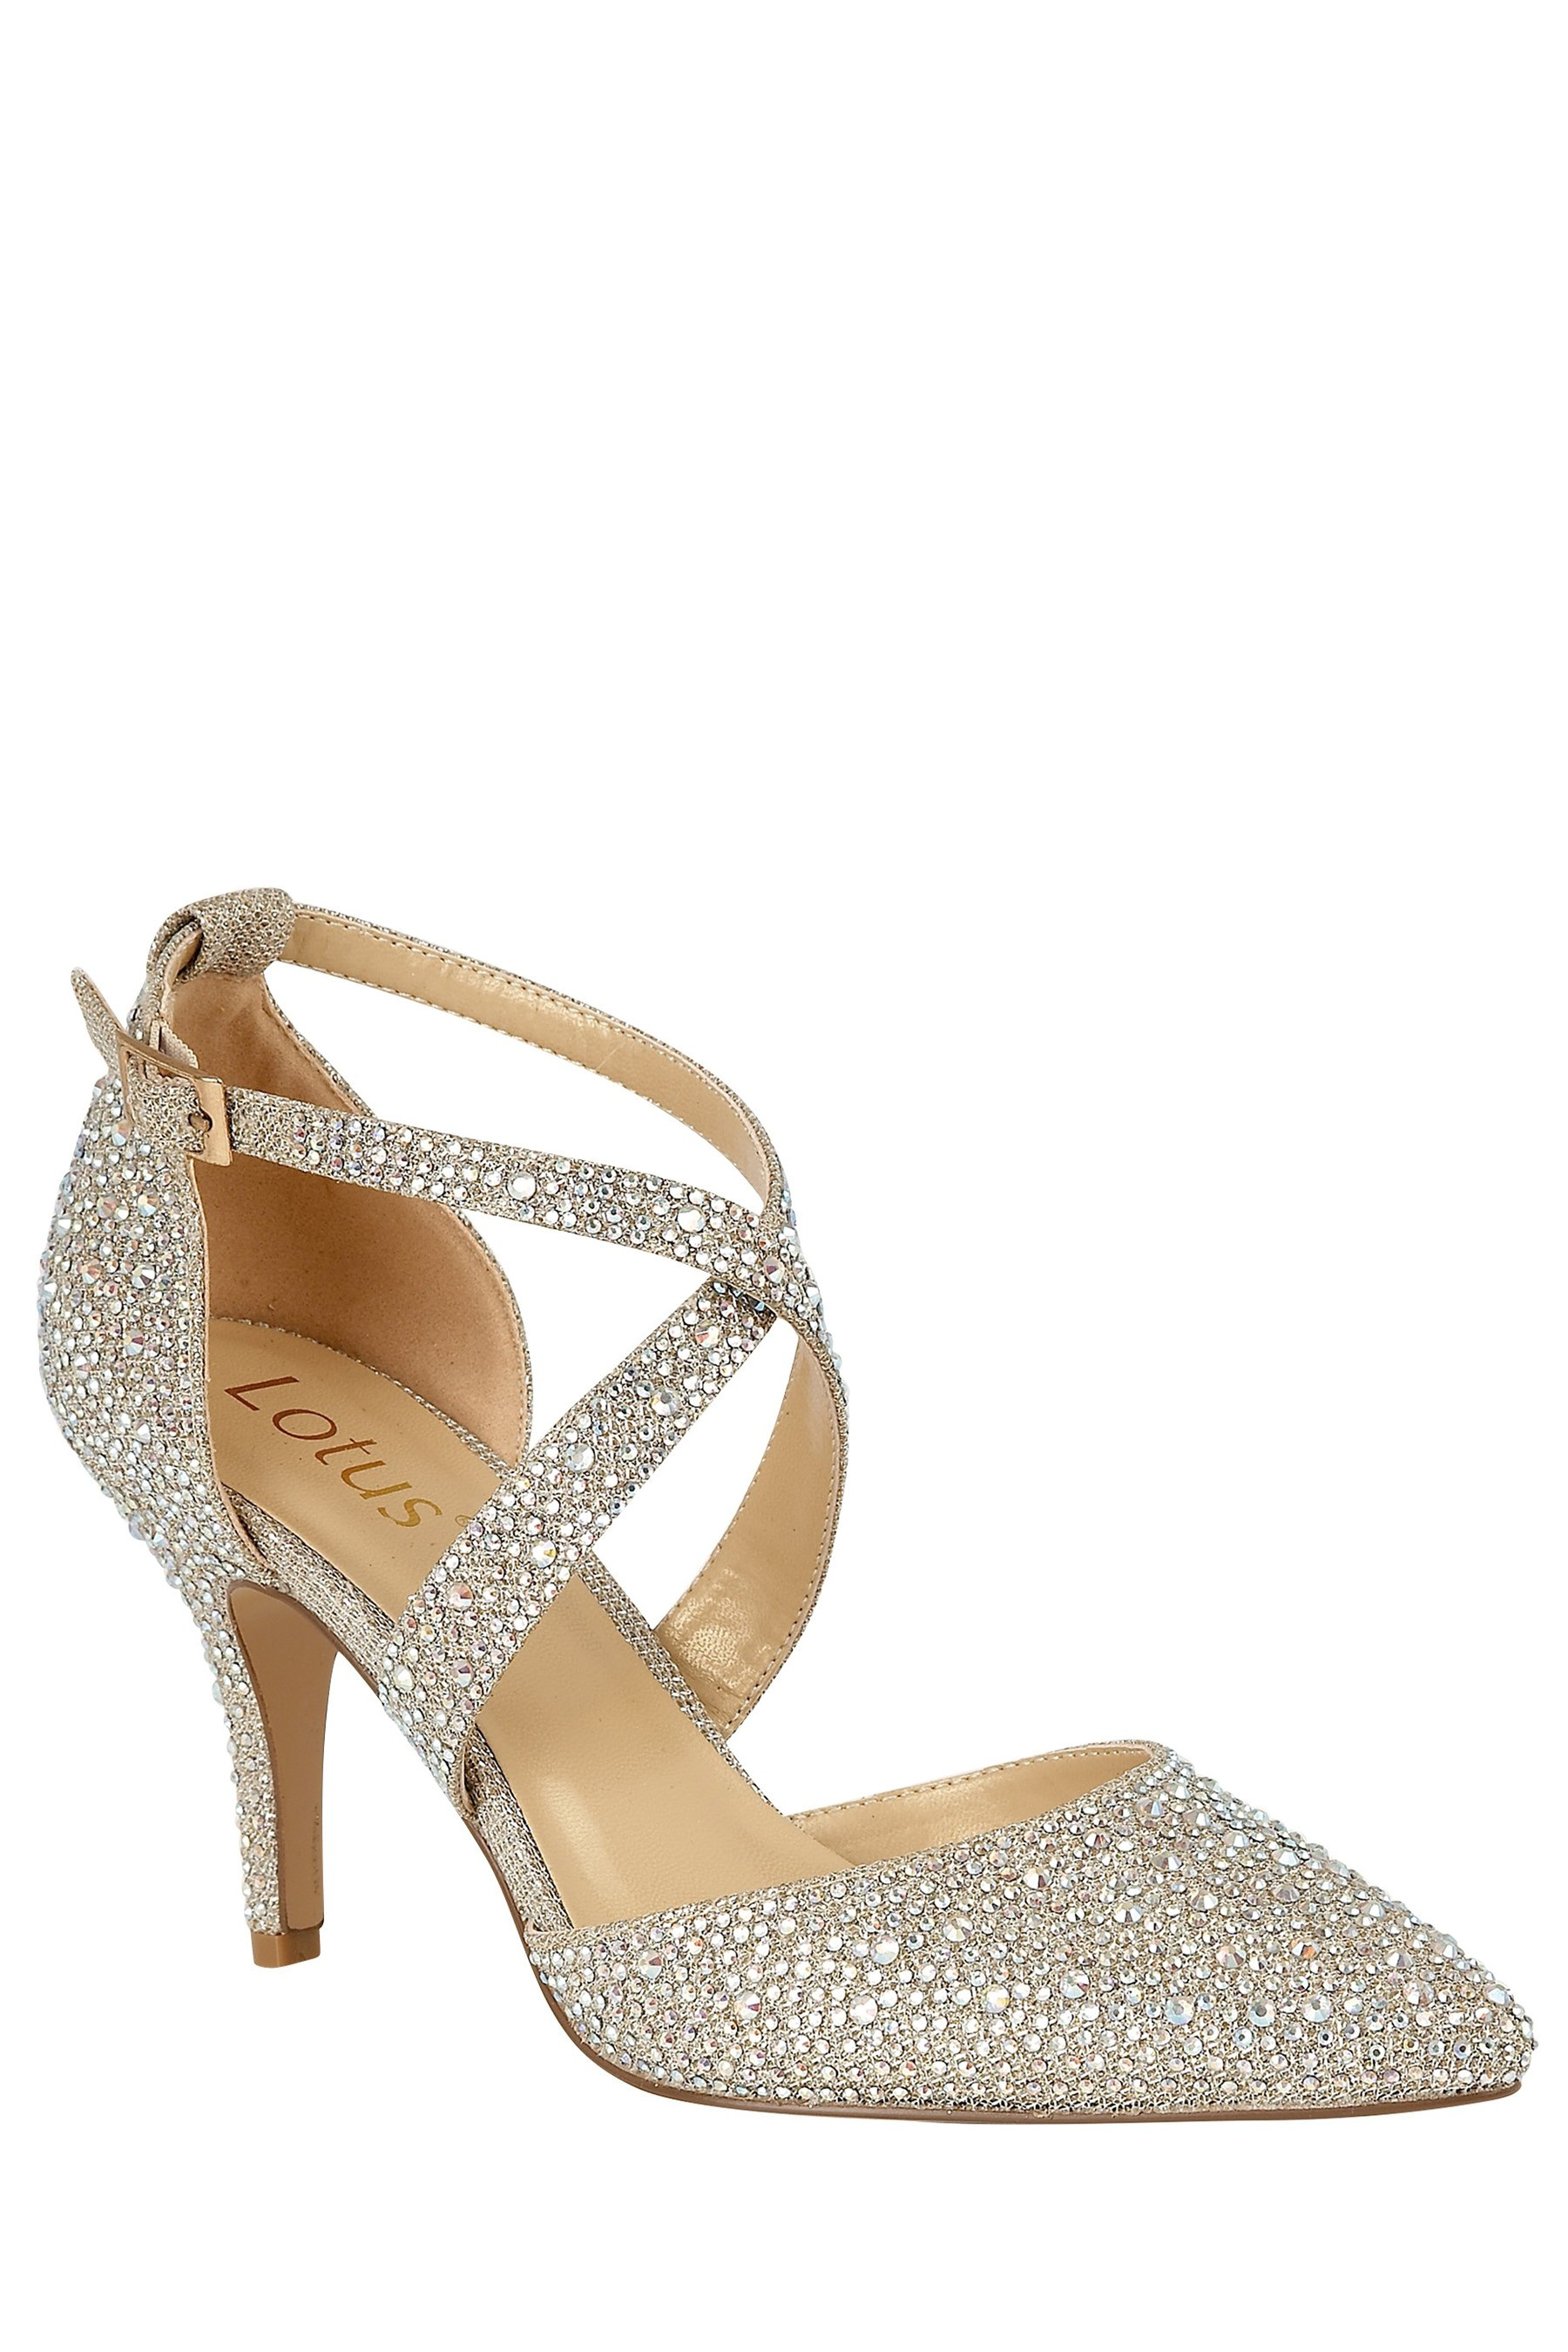 Womens Lotus Jewelled Heeled Shoes Gold | Shoes, Jewels